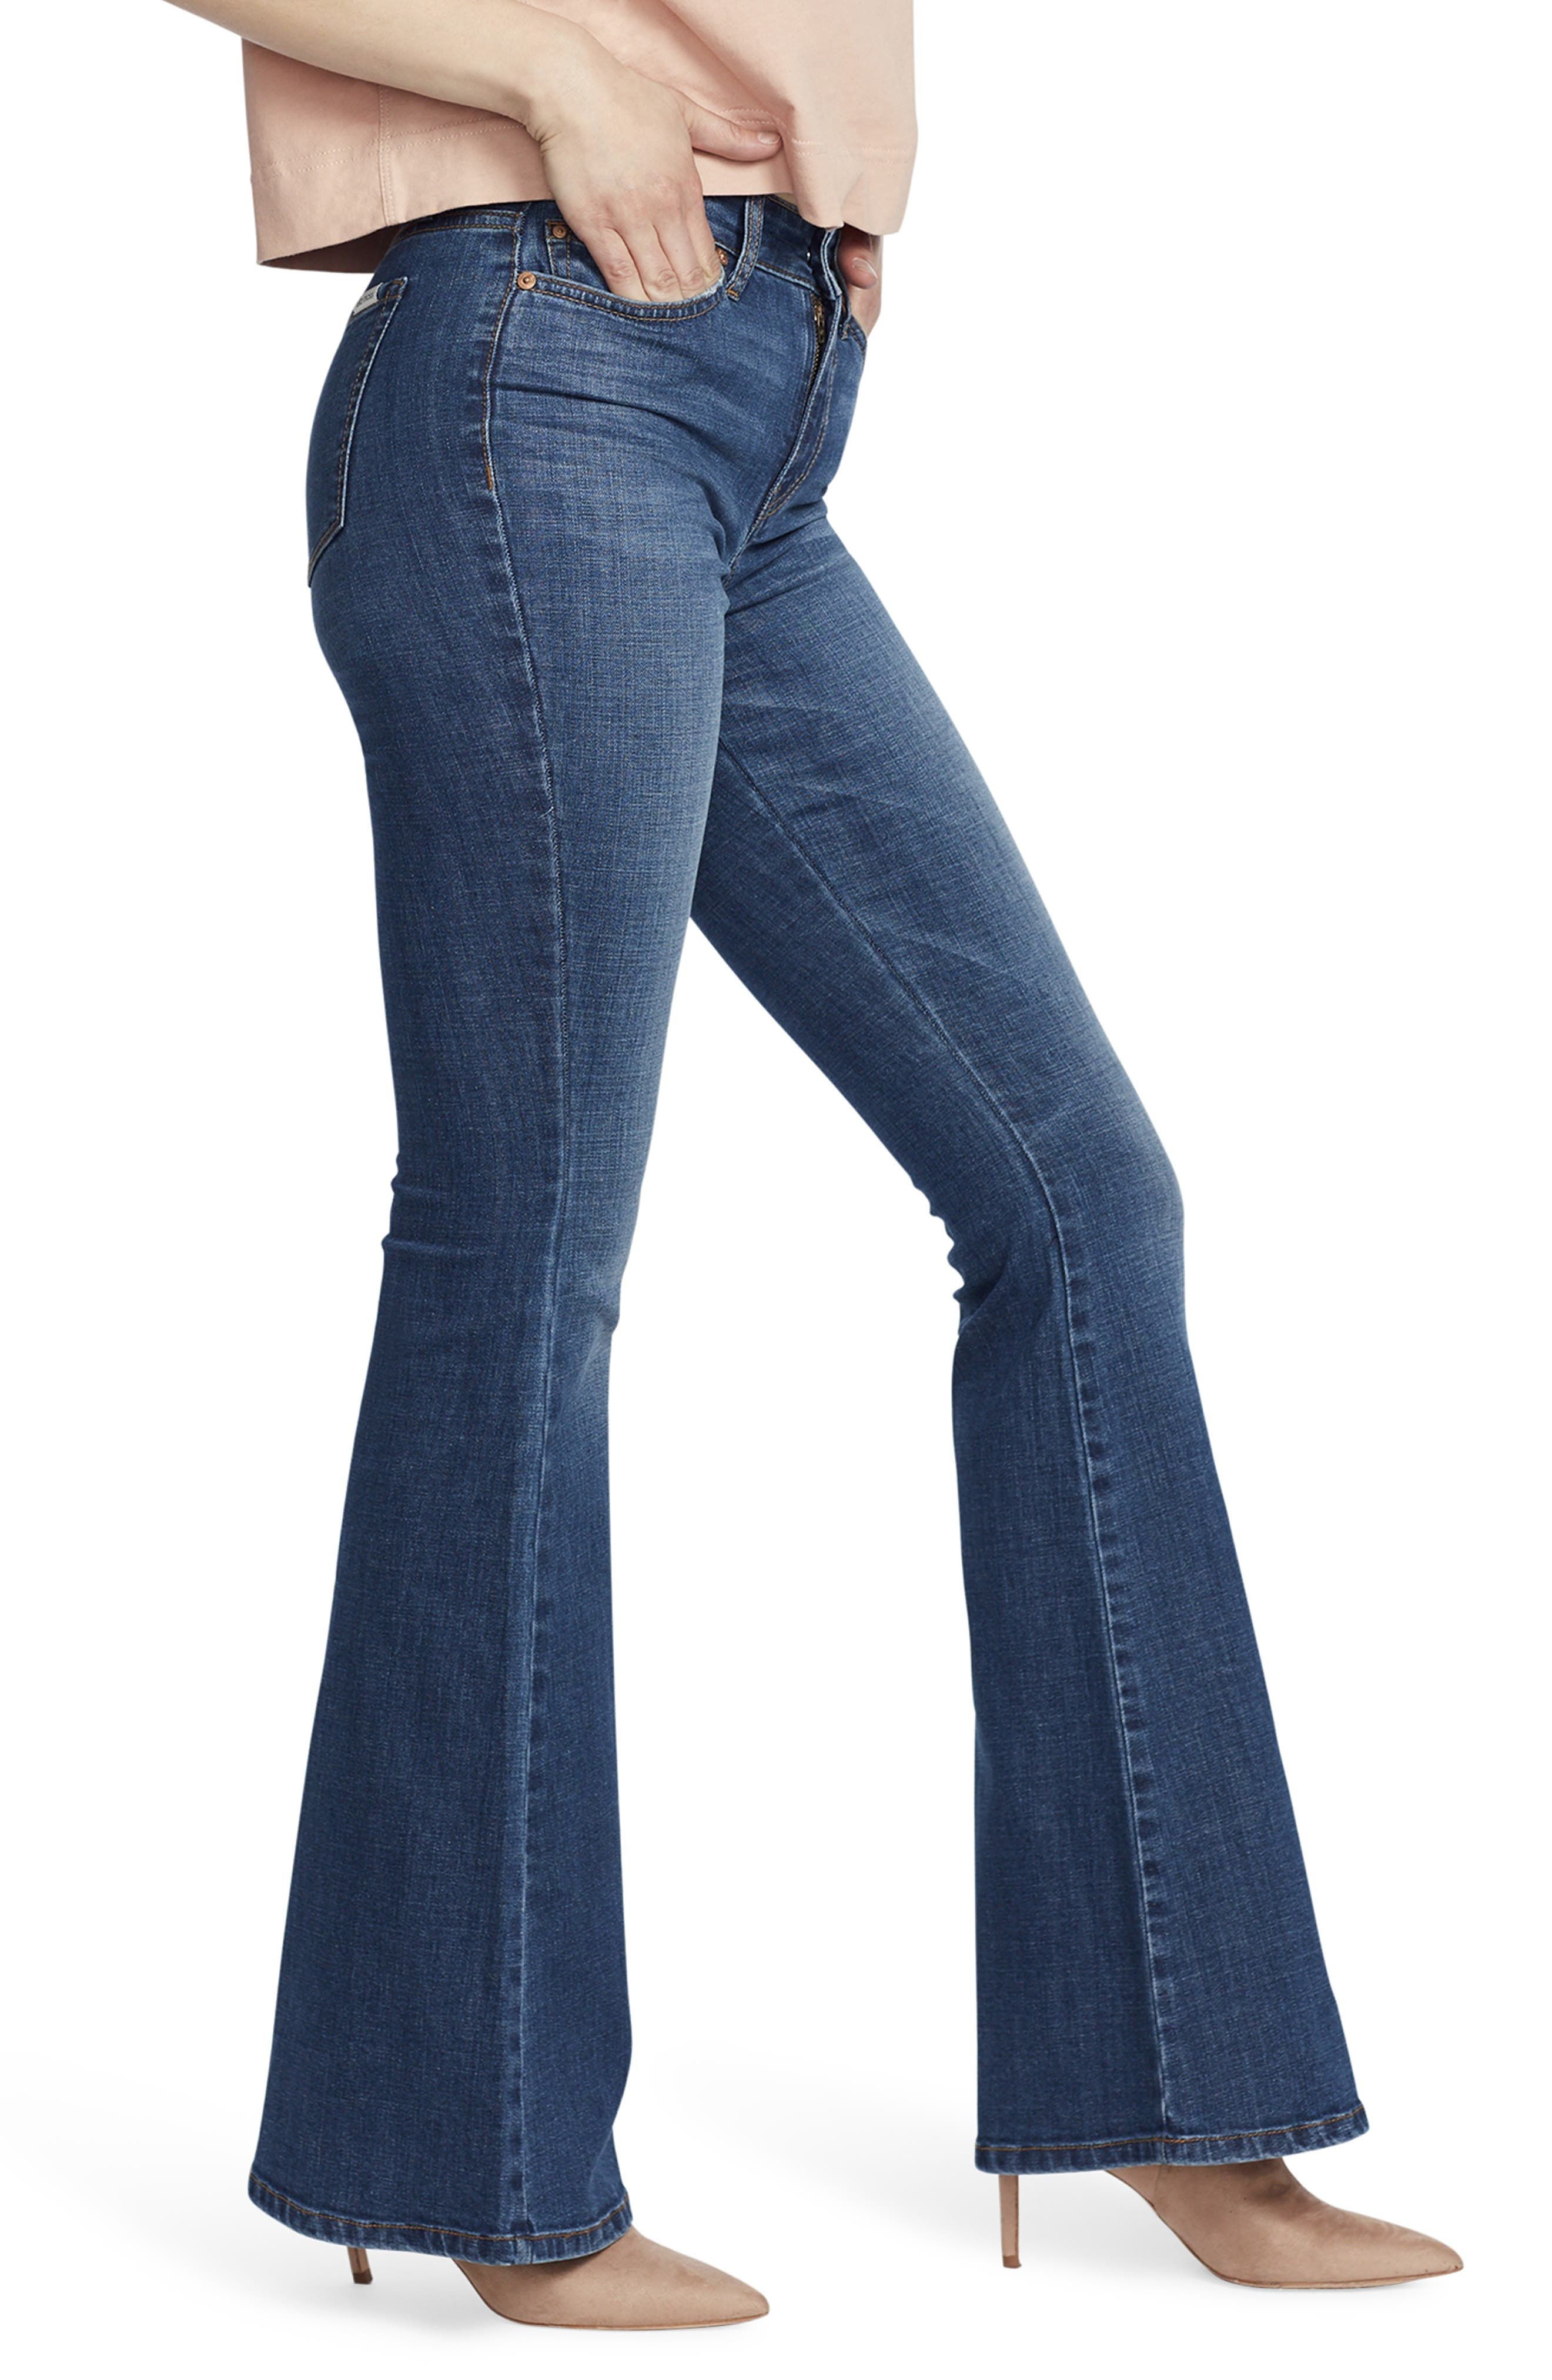 ELLA MOSS, High Waist Flare Jeans, Alternate thumbnail 3, color, NAOMI